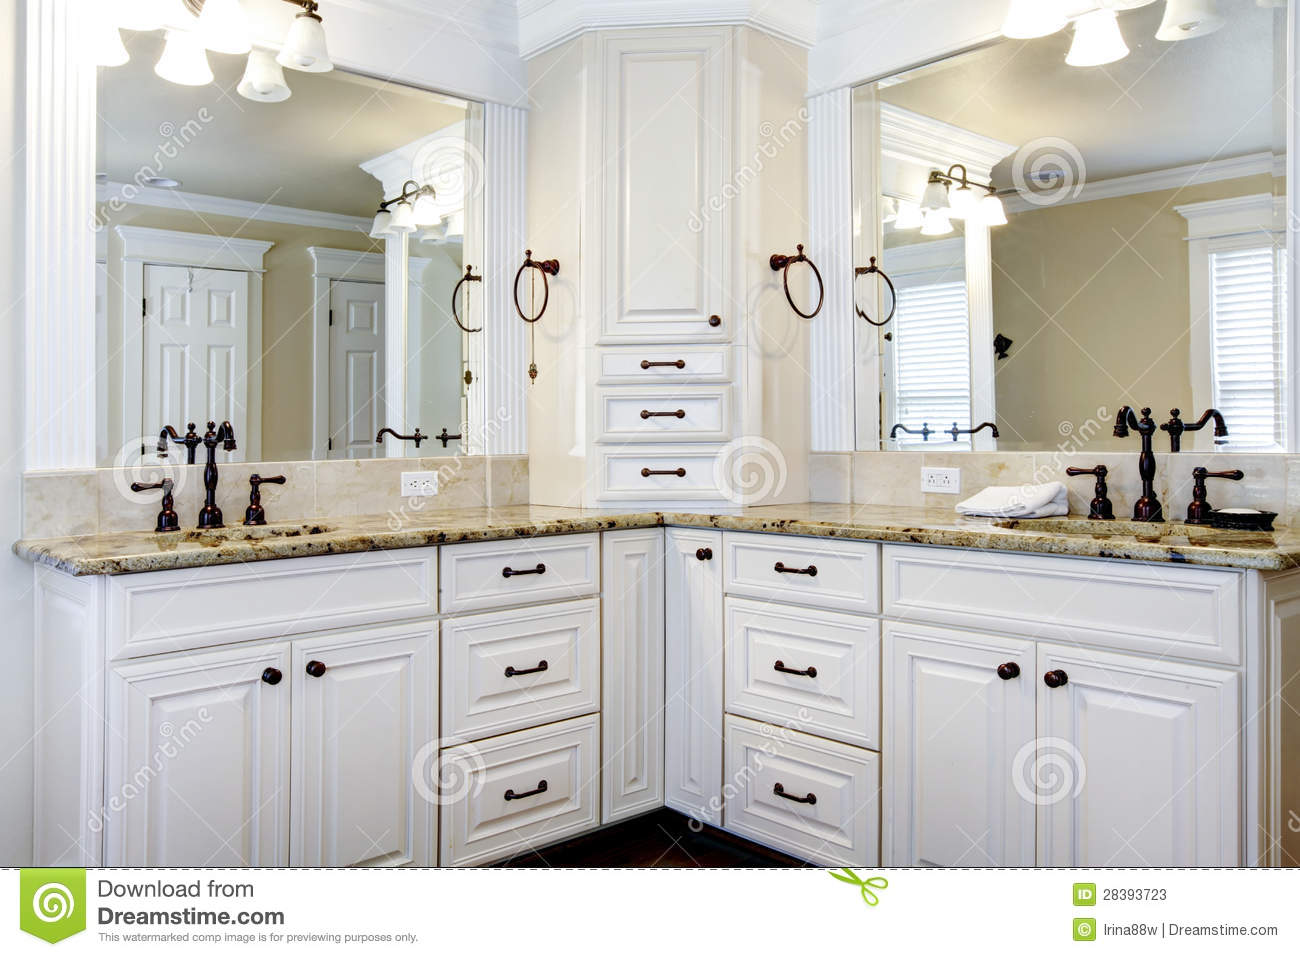 Modern Cabinet 10 Inspiring Modern And Luxury Bathrooms: Luxury Large White Master Bathroom Cabinets With Double